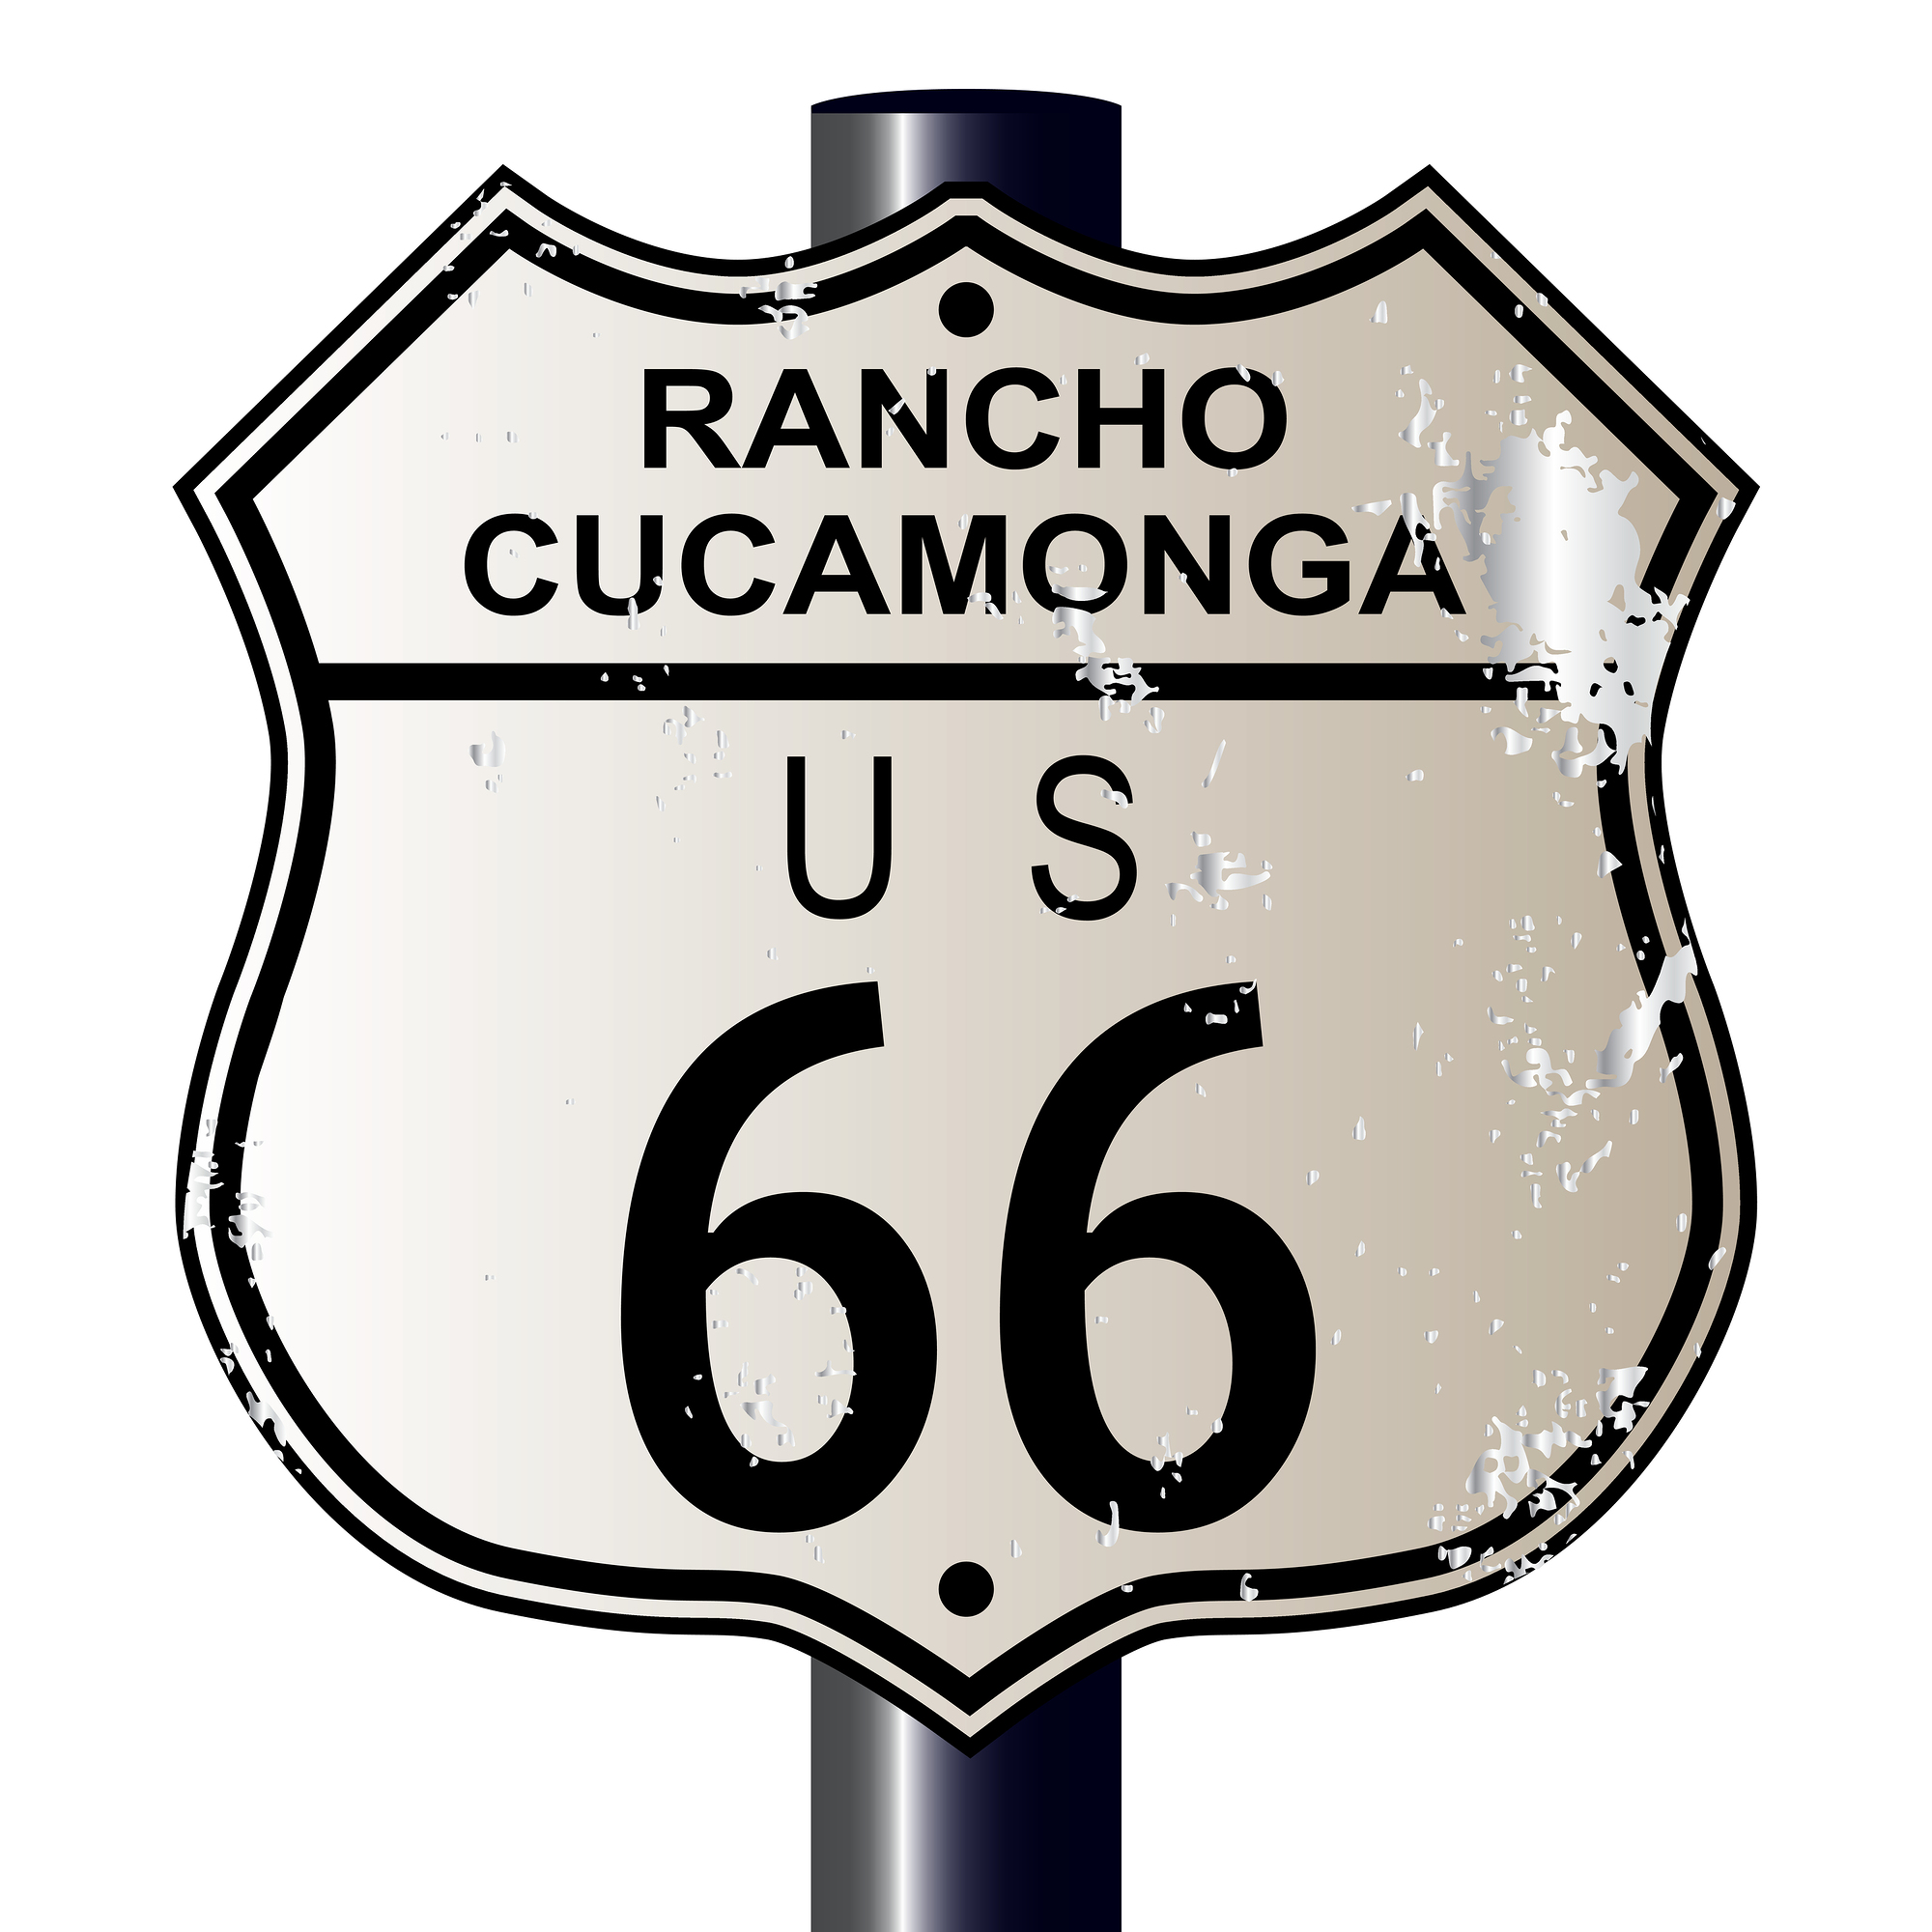 Search for a Rancho Cucamonga home and Rancho Cucamonga real estate.